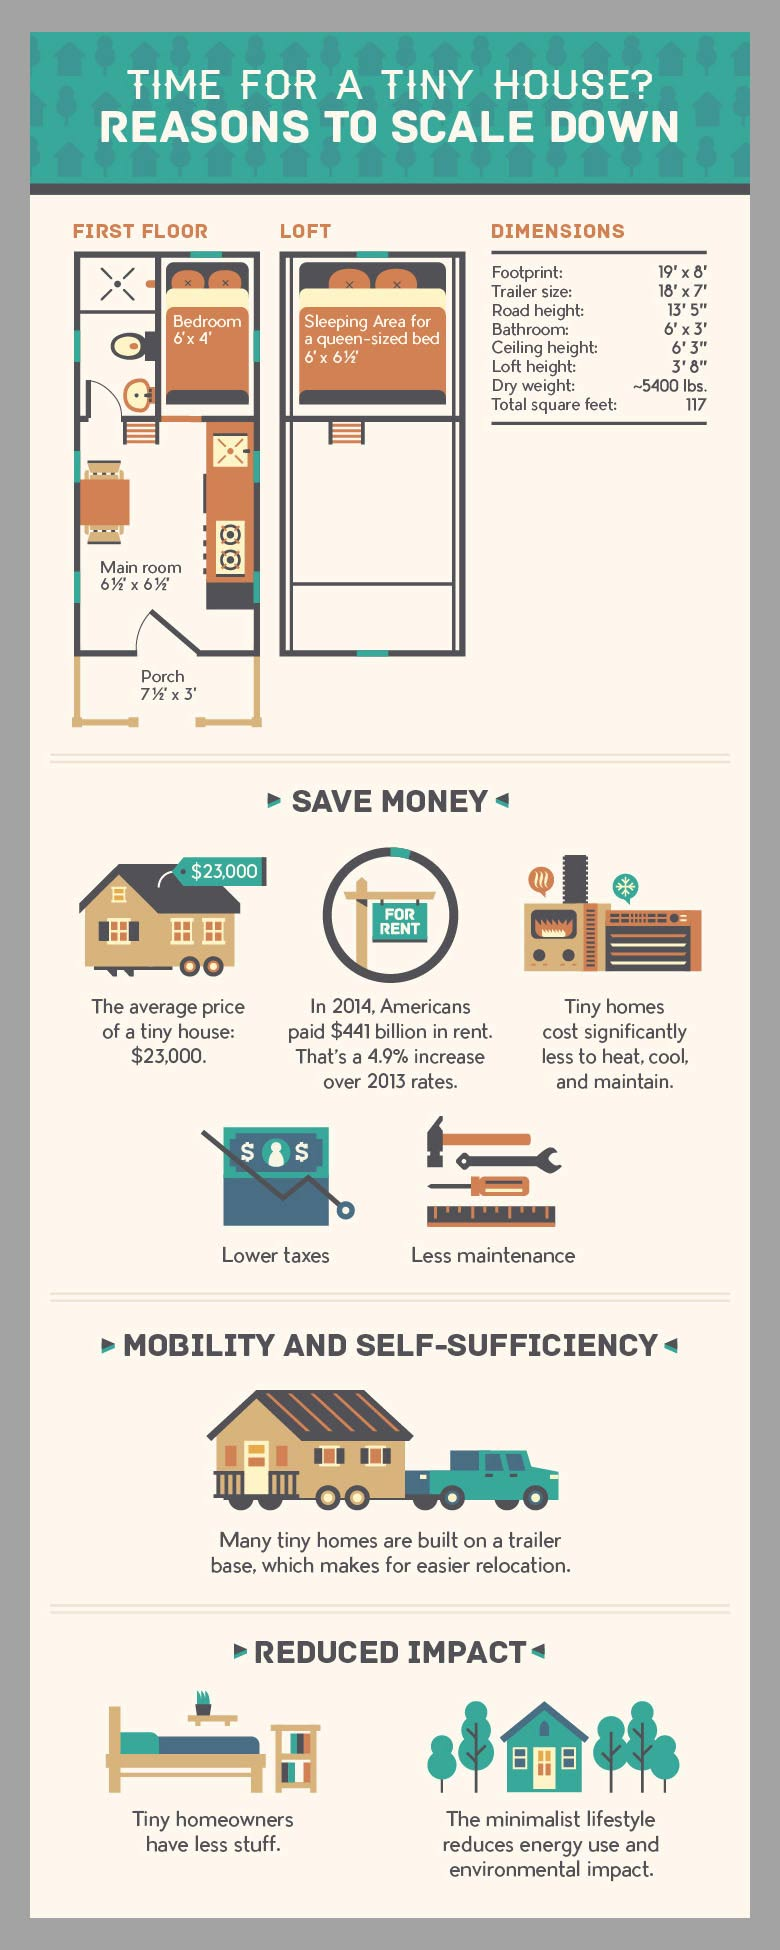 tiny house trailer advantages - a few reasons to scale down and consider building your own tiny house